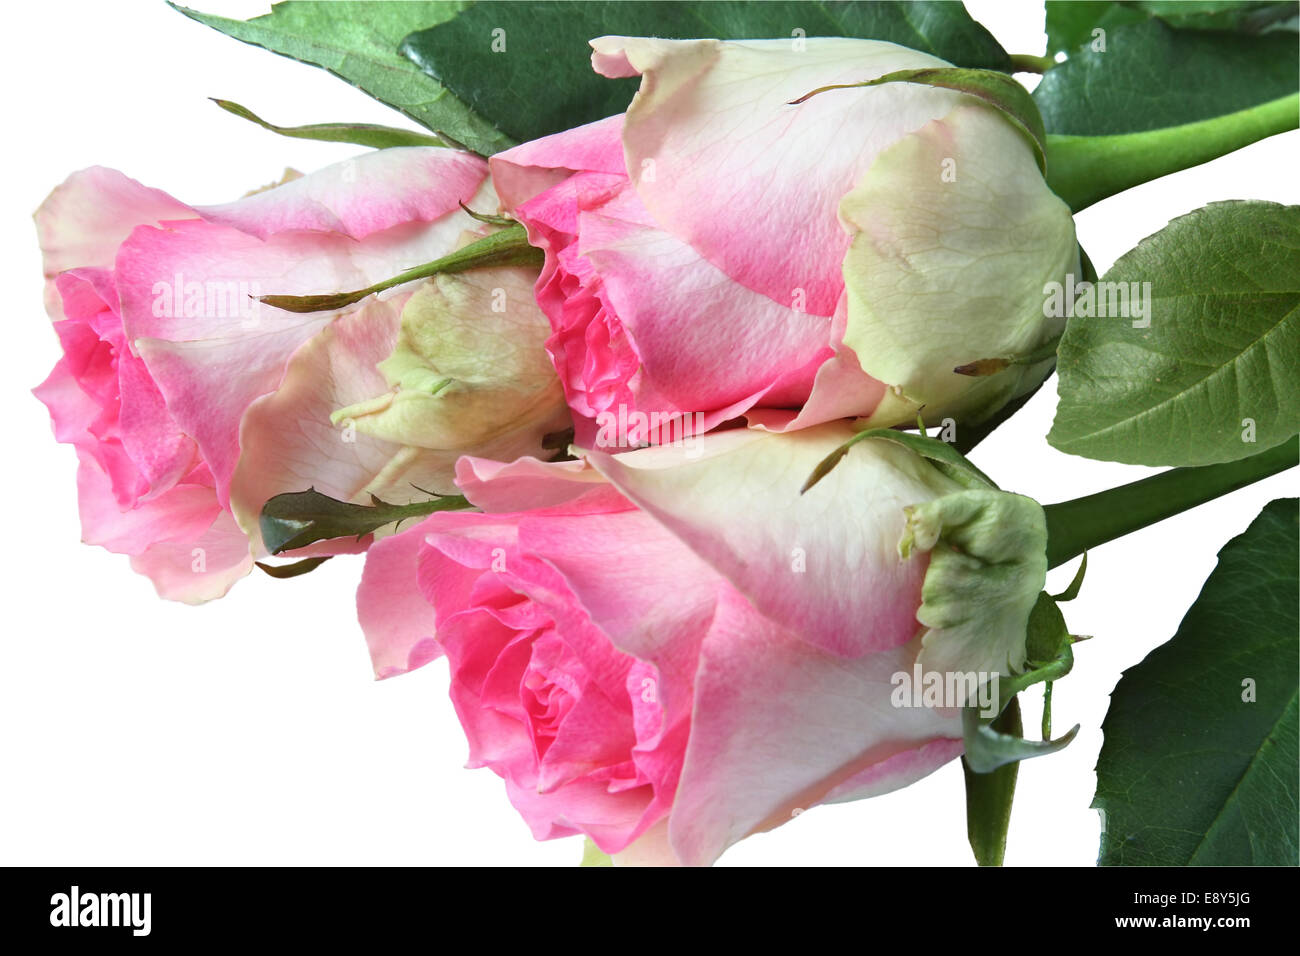 Bouquet of pink roses. Isolated on white Stock Photo